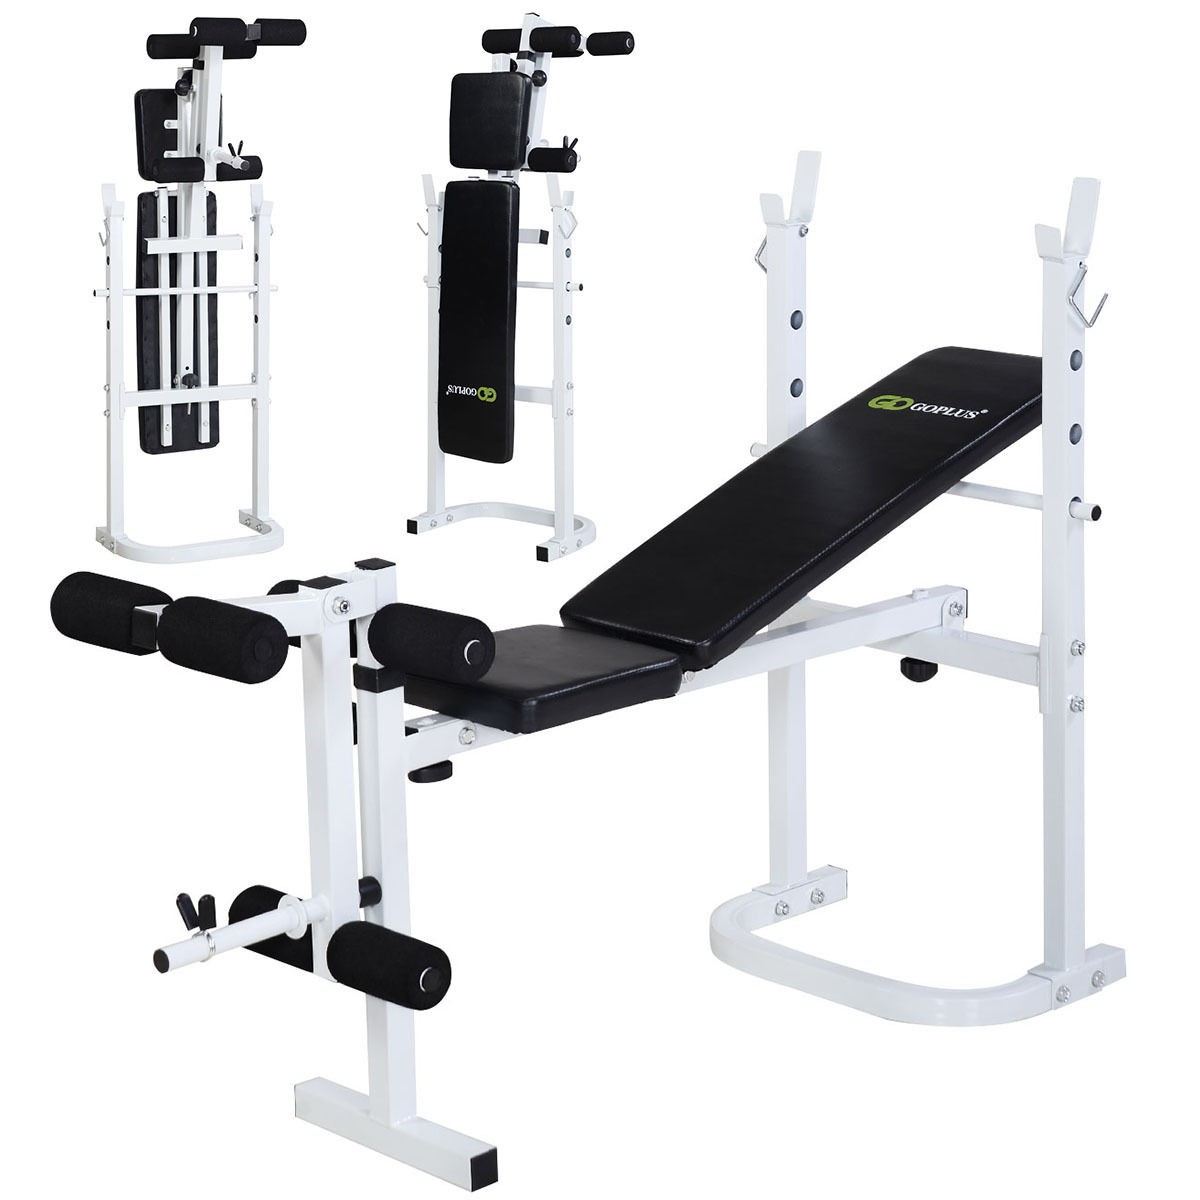 Folding Body Solid Olympic Weight Bench Incline Lift